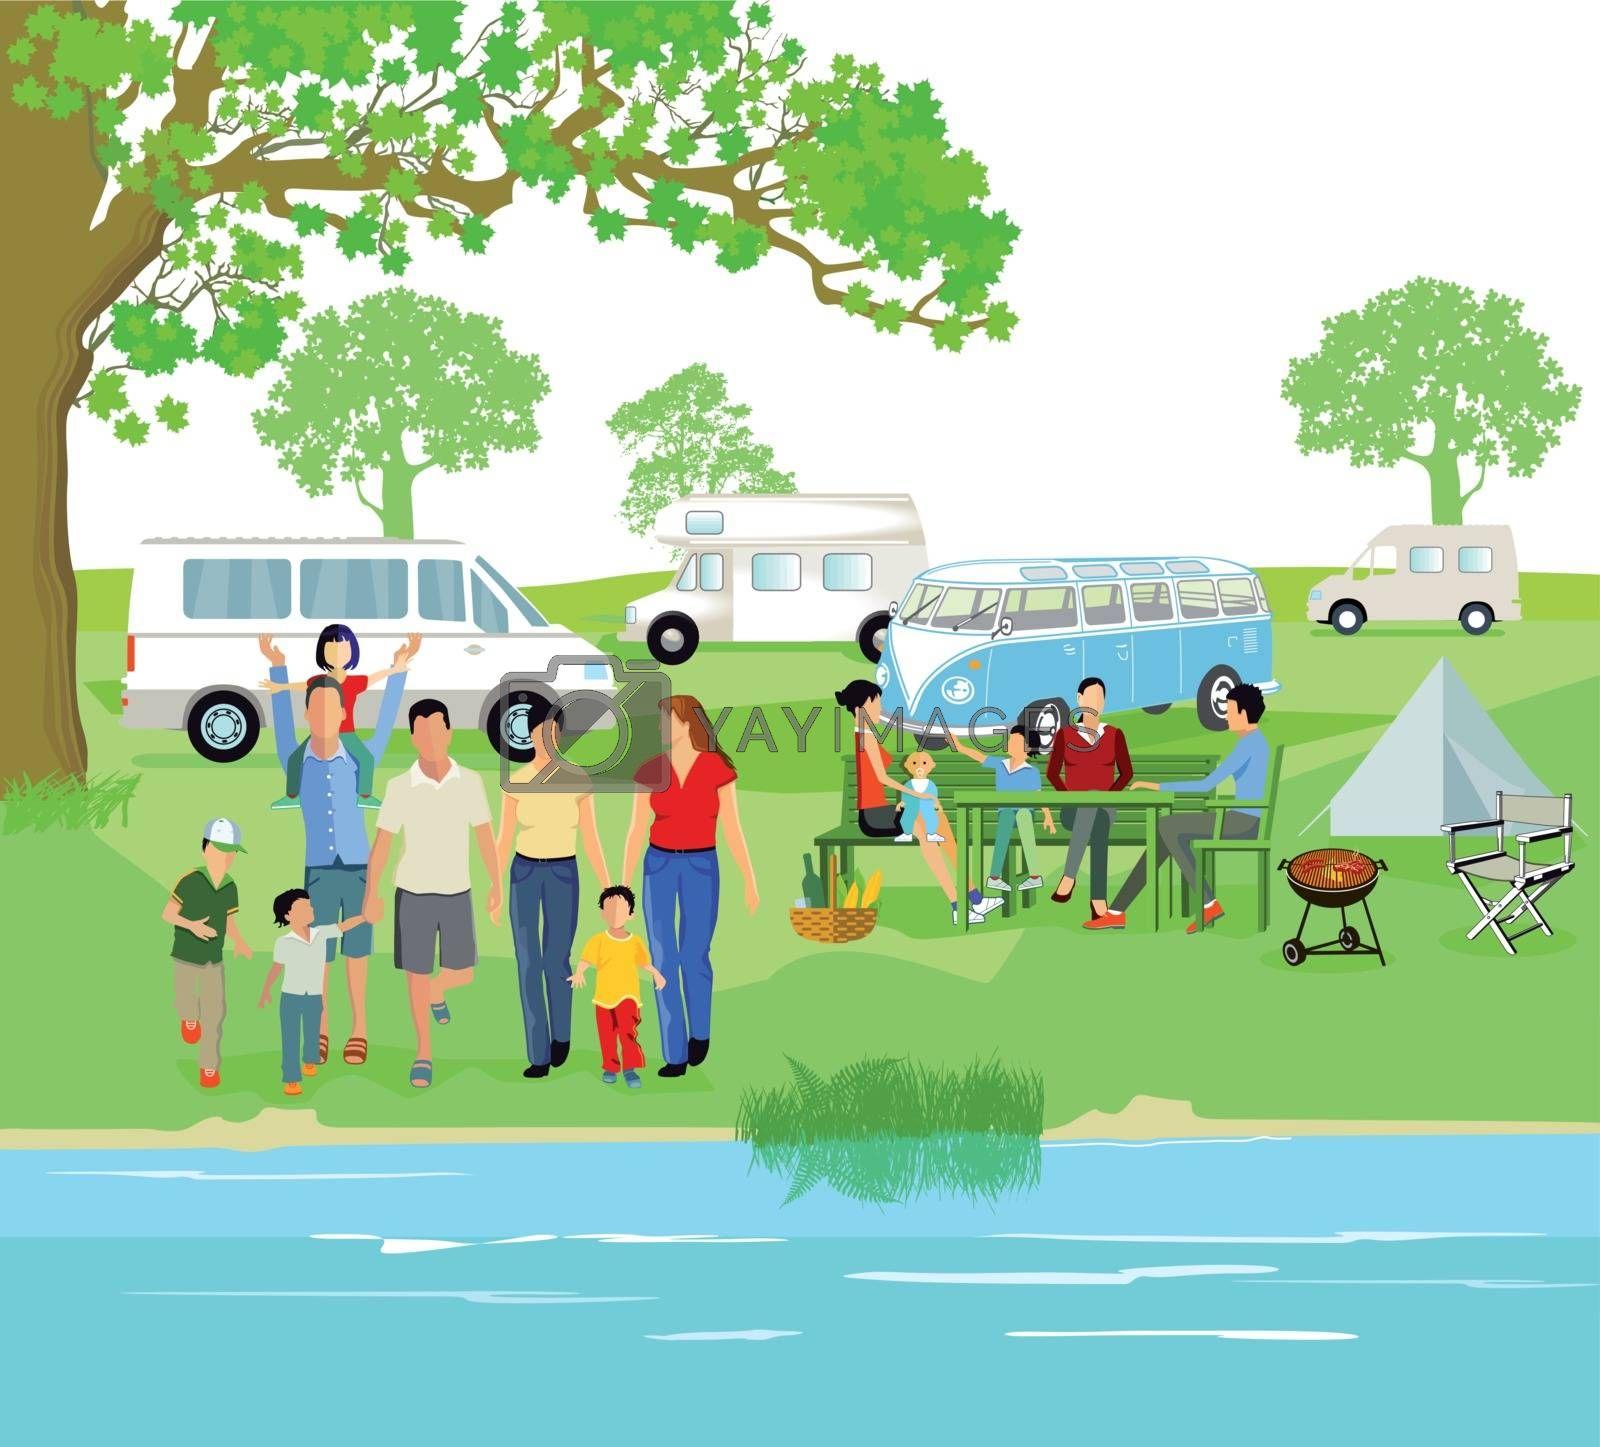 Caravanning with parents and children